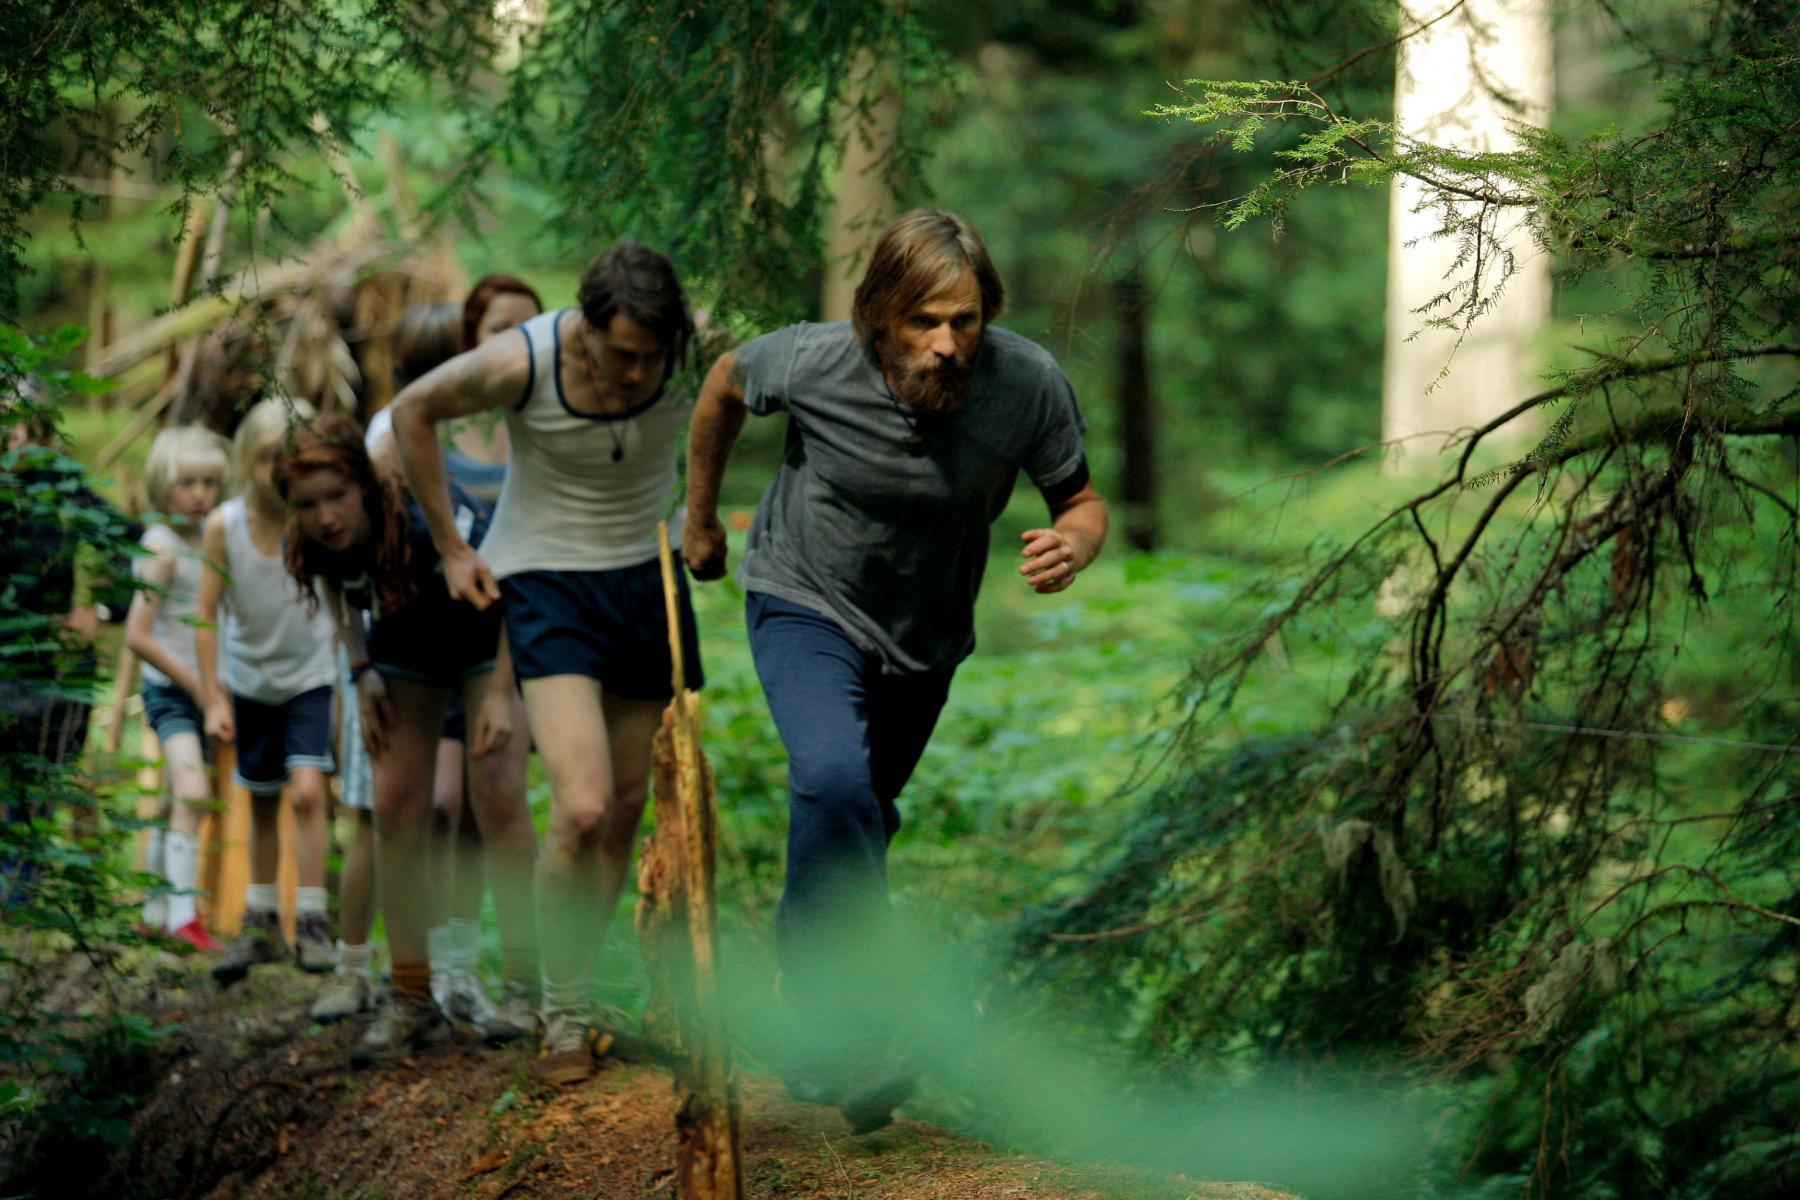 Image gallery for Captain Fantastic - FilmAffinity